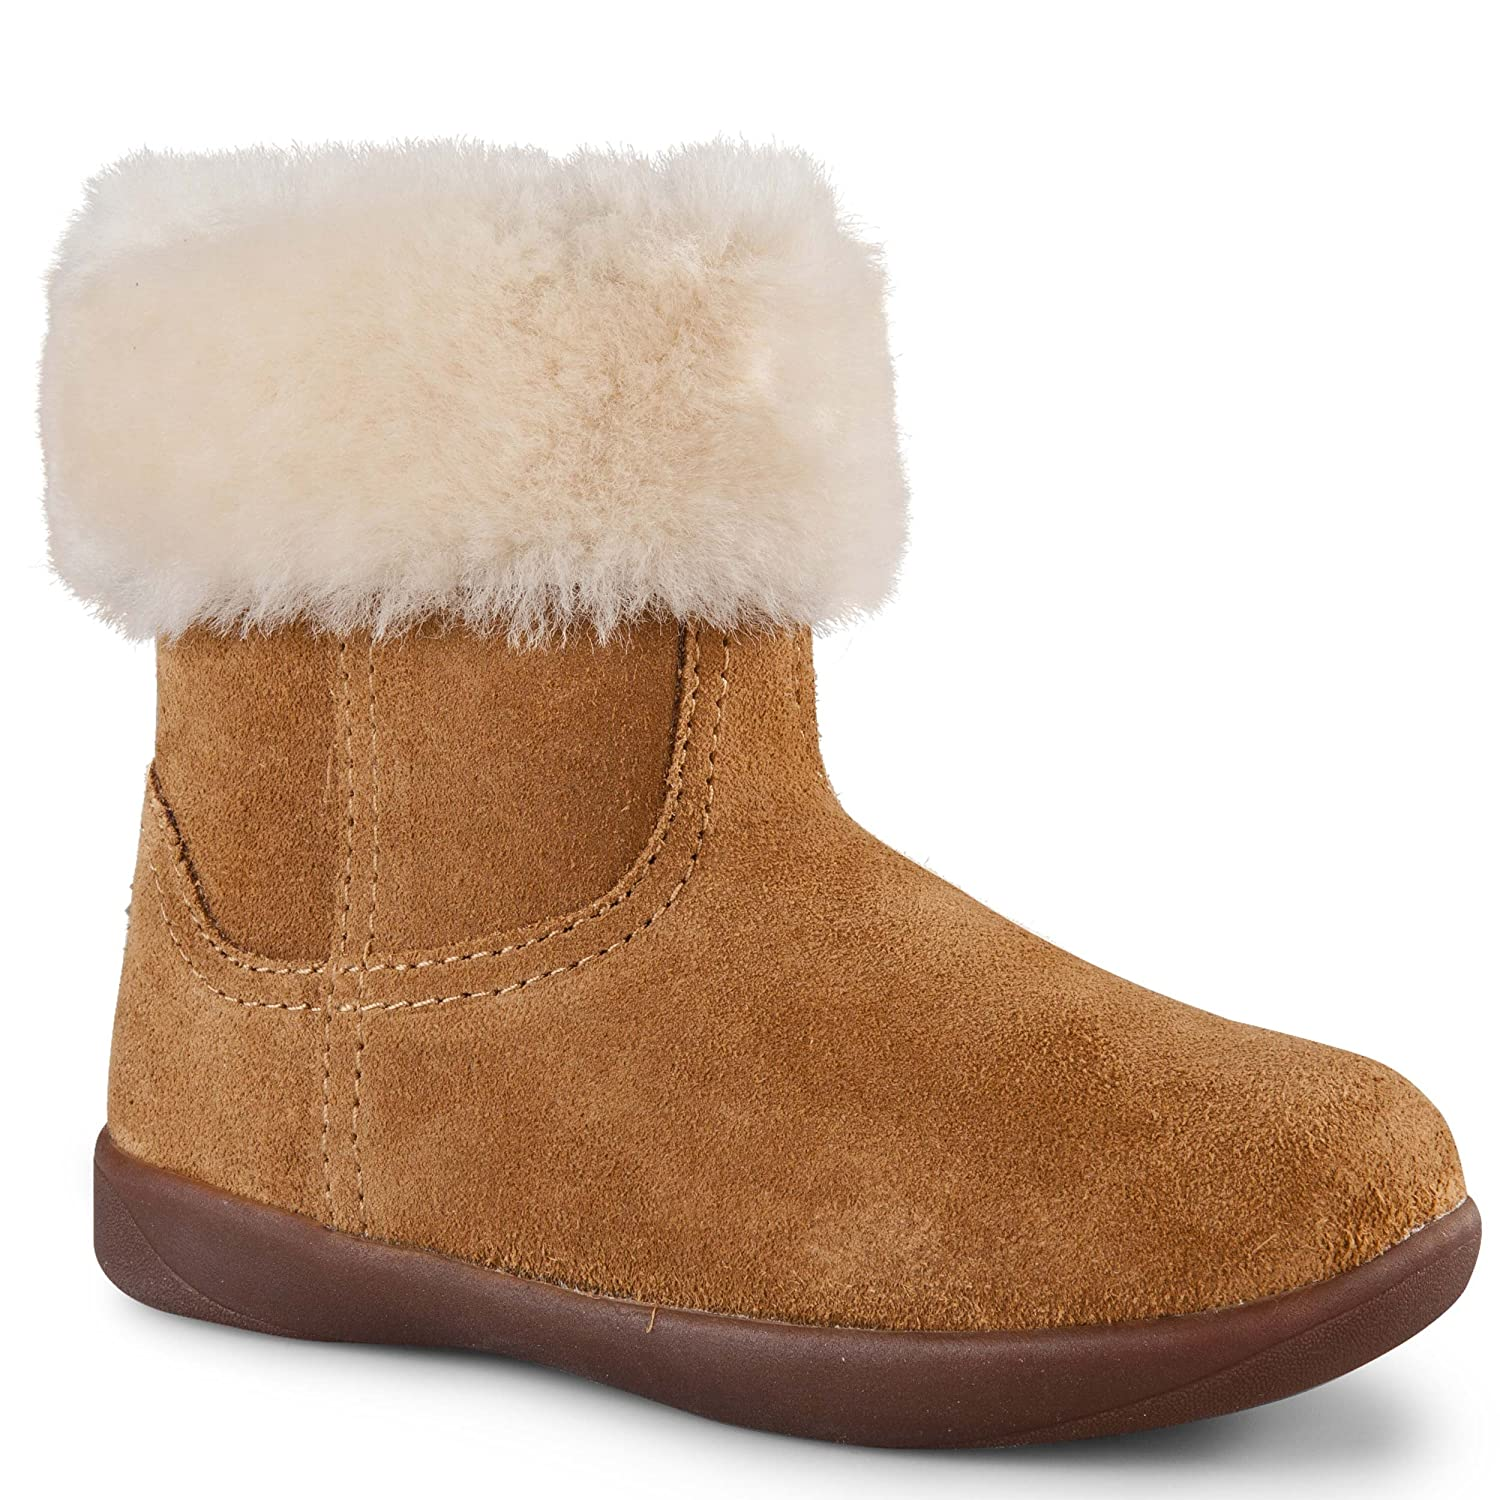 UGG Kids Baby Girl's Jorie II (Toddler) Chestnut Boot 9.5 Toddler M: Amazon.co.uk: Shoes & Bags